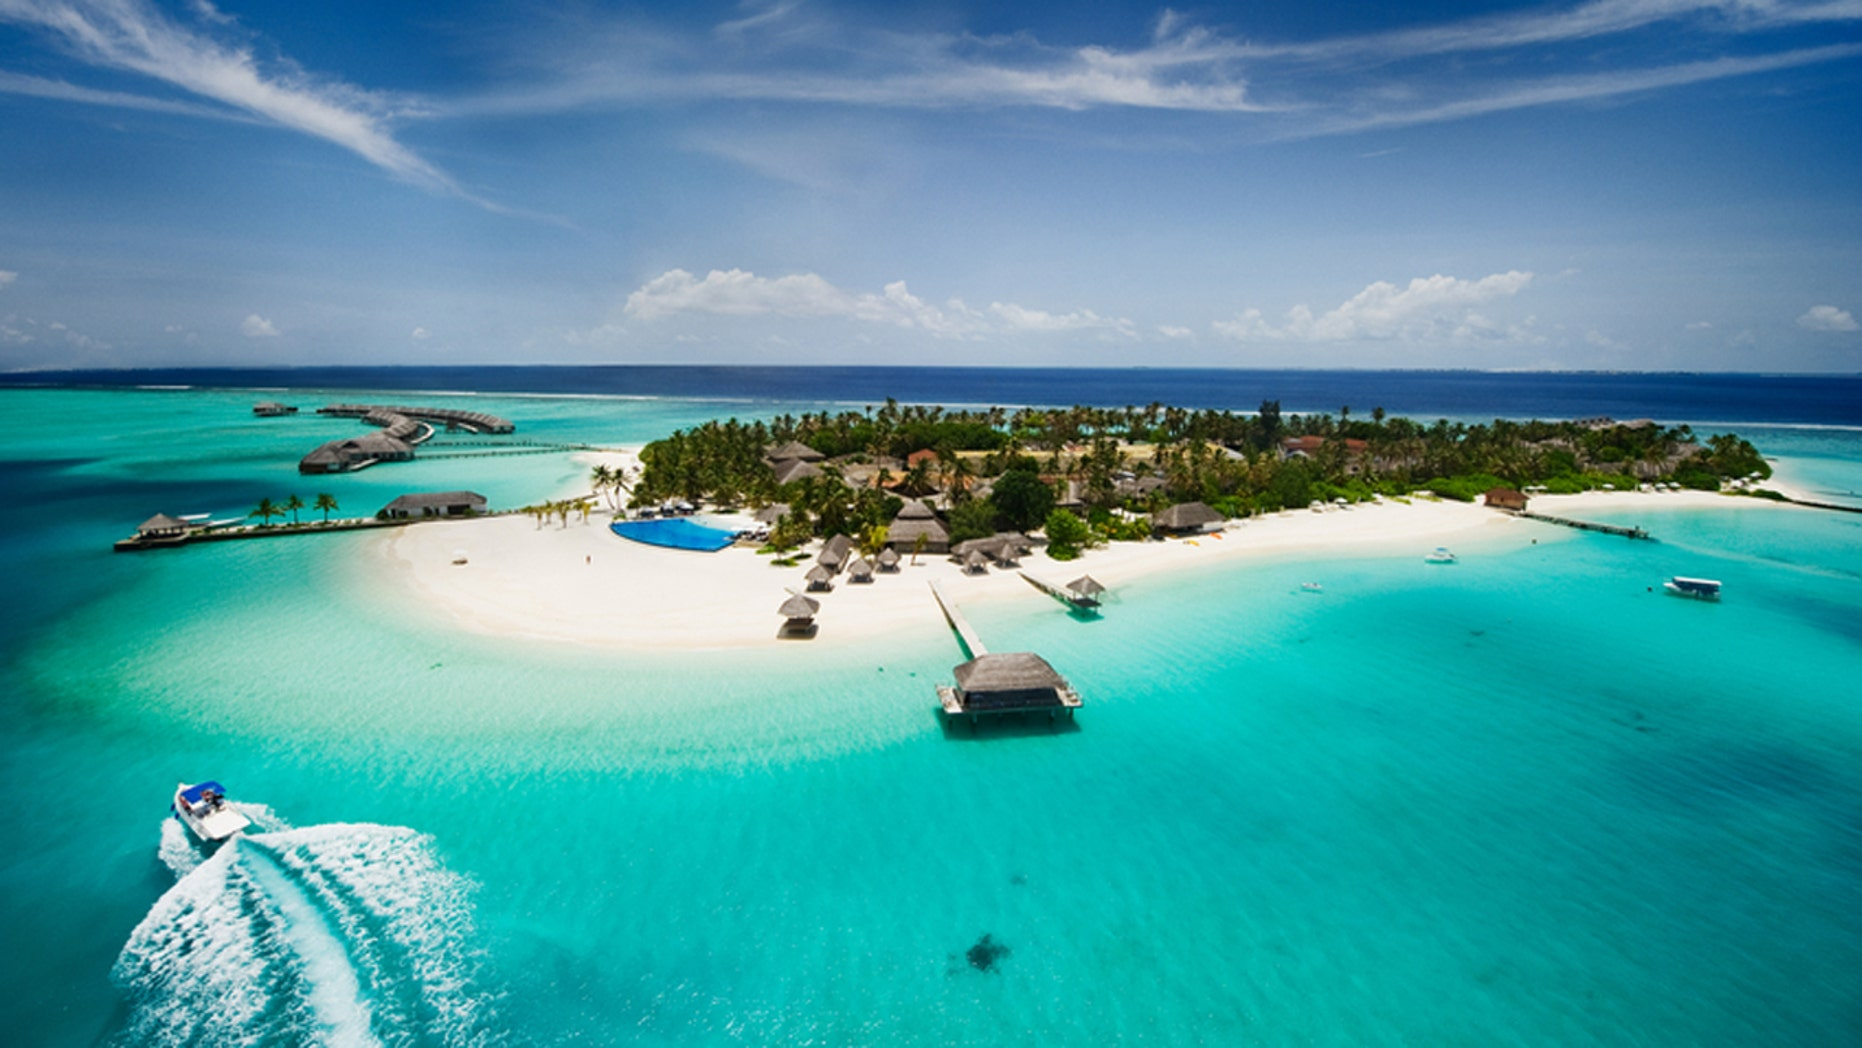 The Maldives are a jewel in the Indian Ocean but the threat of extreme Islamic terrorism may change tourists' plans.